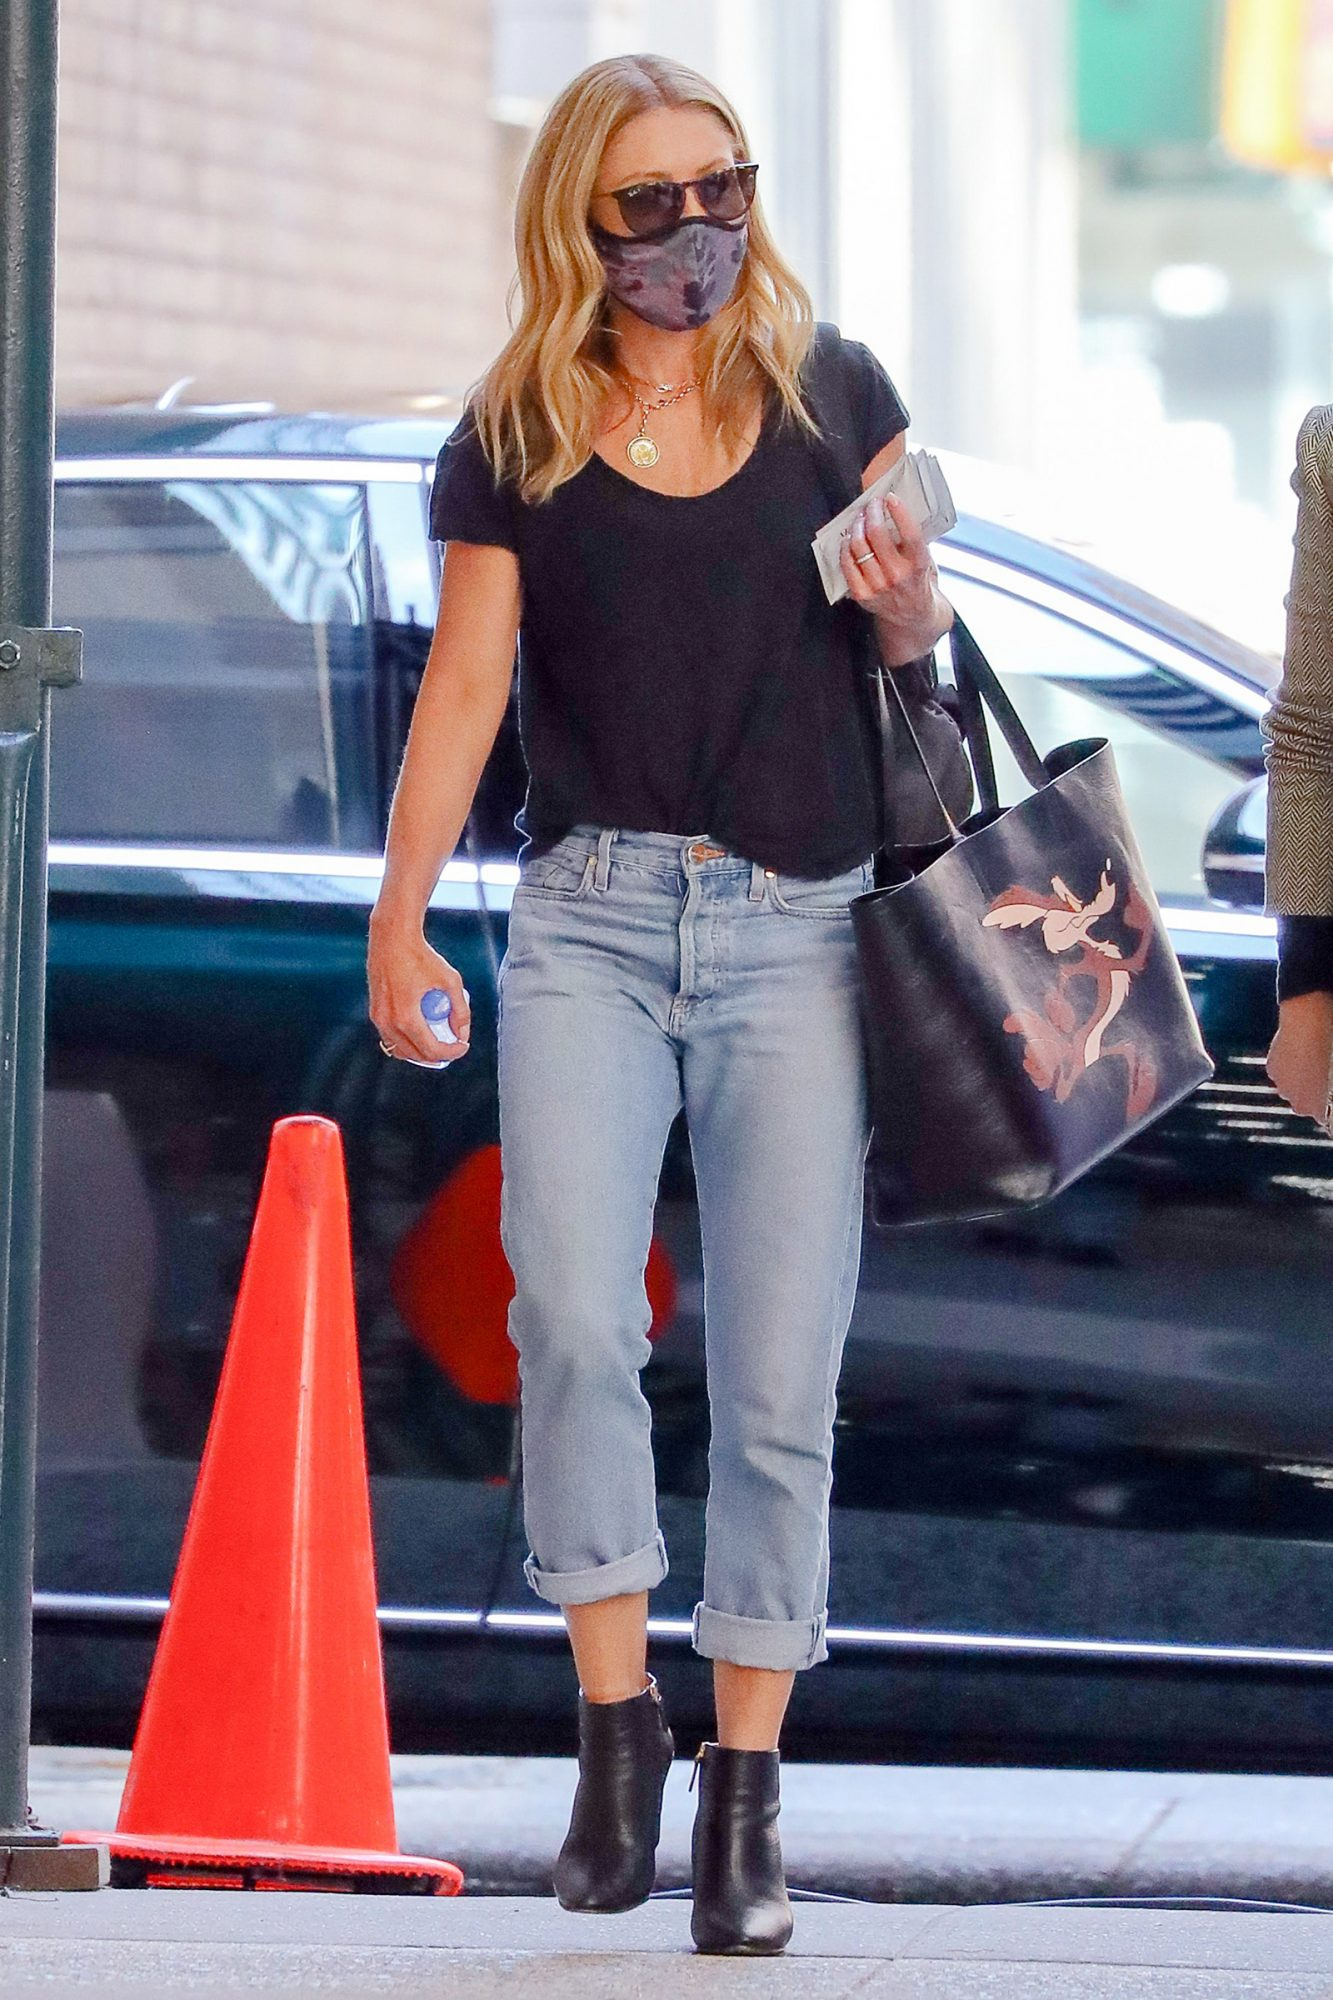 Kelly Ripa spotted in loose fitting faded jeans and carrying a Calvin Klein Wile E. Coyote bag while out and about in New York City. Beep Beep!